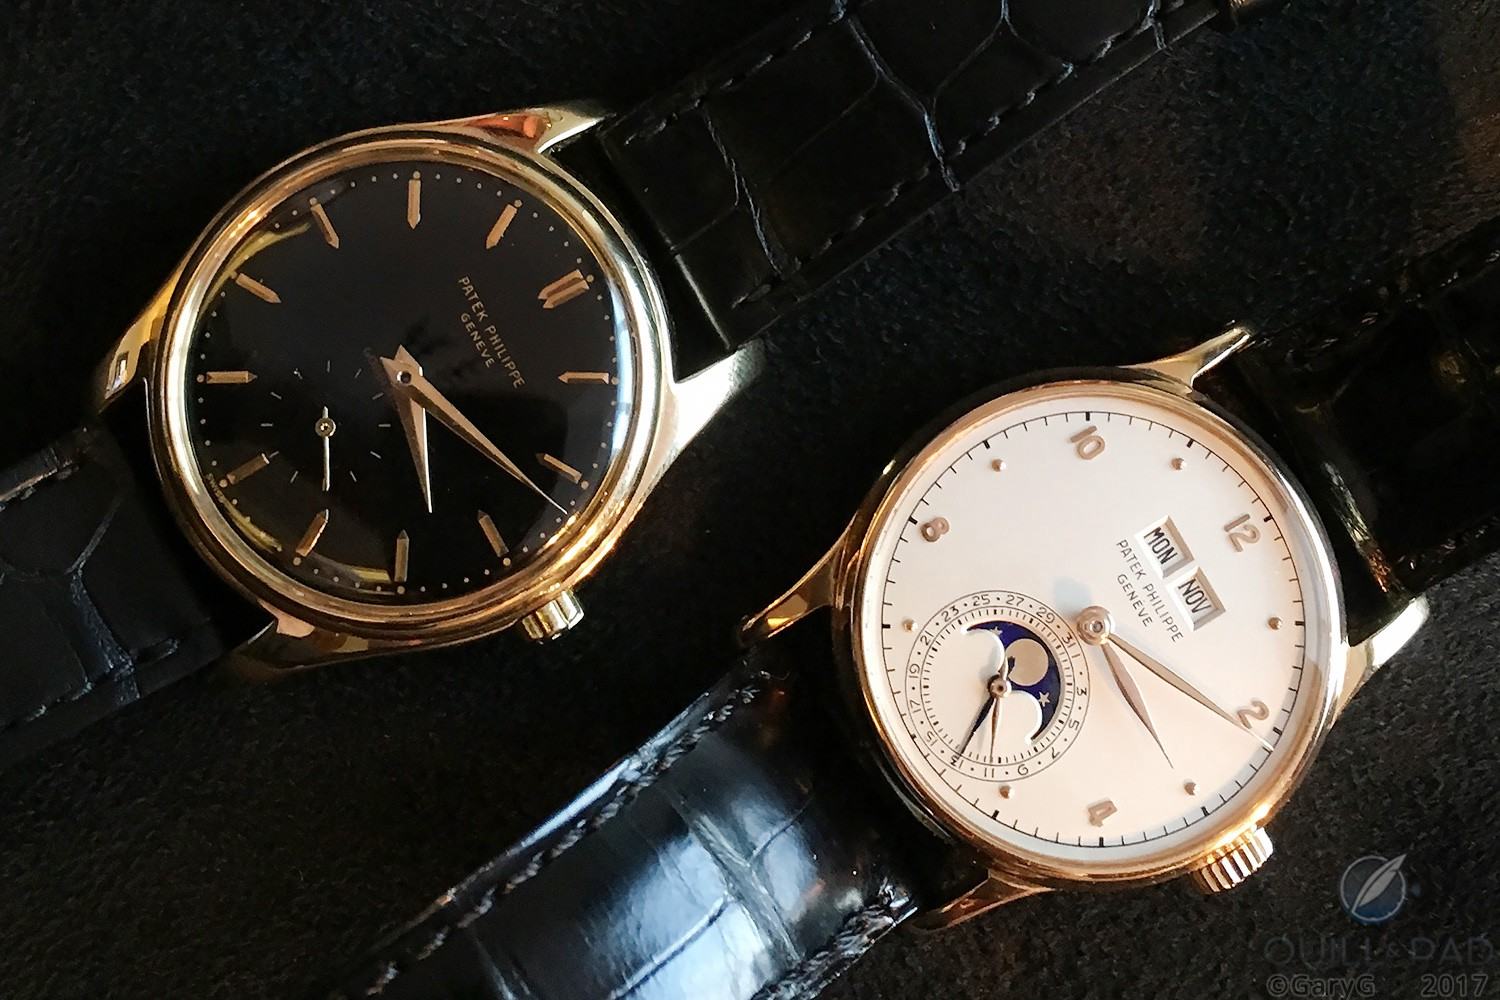 Two-watch vintage collection? Patek Philippe References 2526 (at left) and 1526